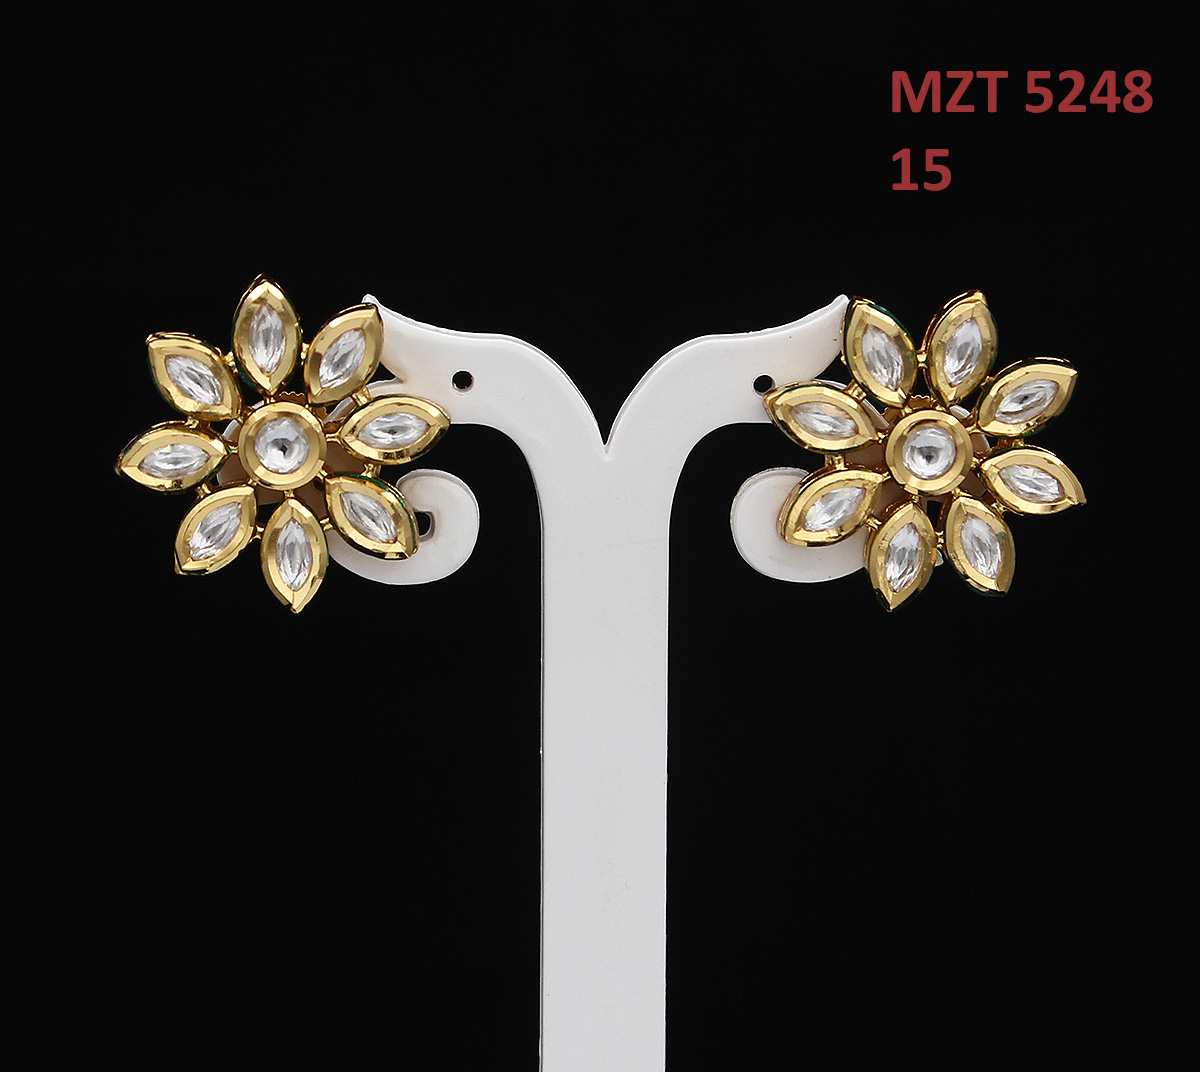 55Carat | 55Carat Traditional Stud Earrings Gold Plated Marquise Round Kundan Stone Studded Flower Designer Collection Tops for Women and Girls